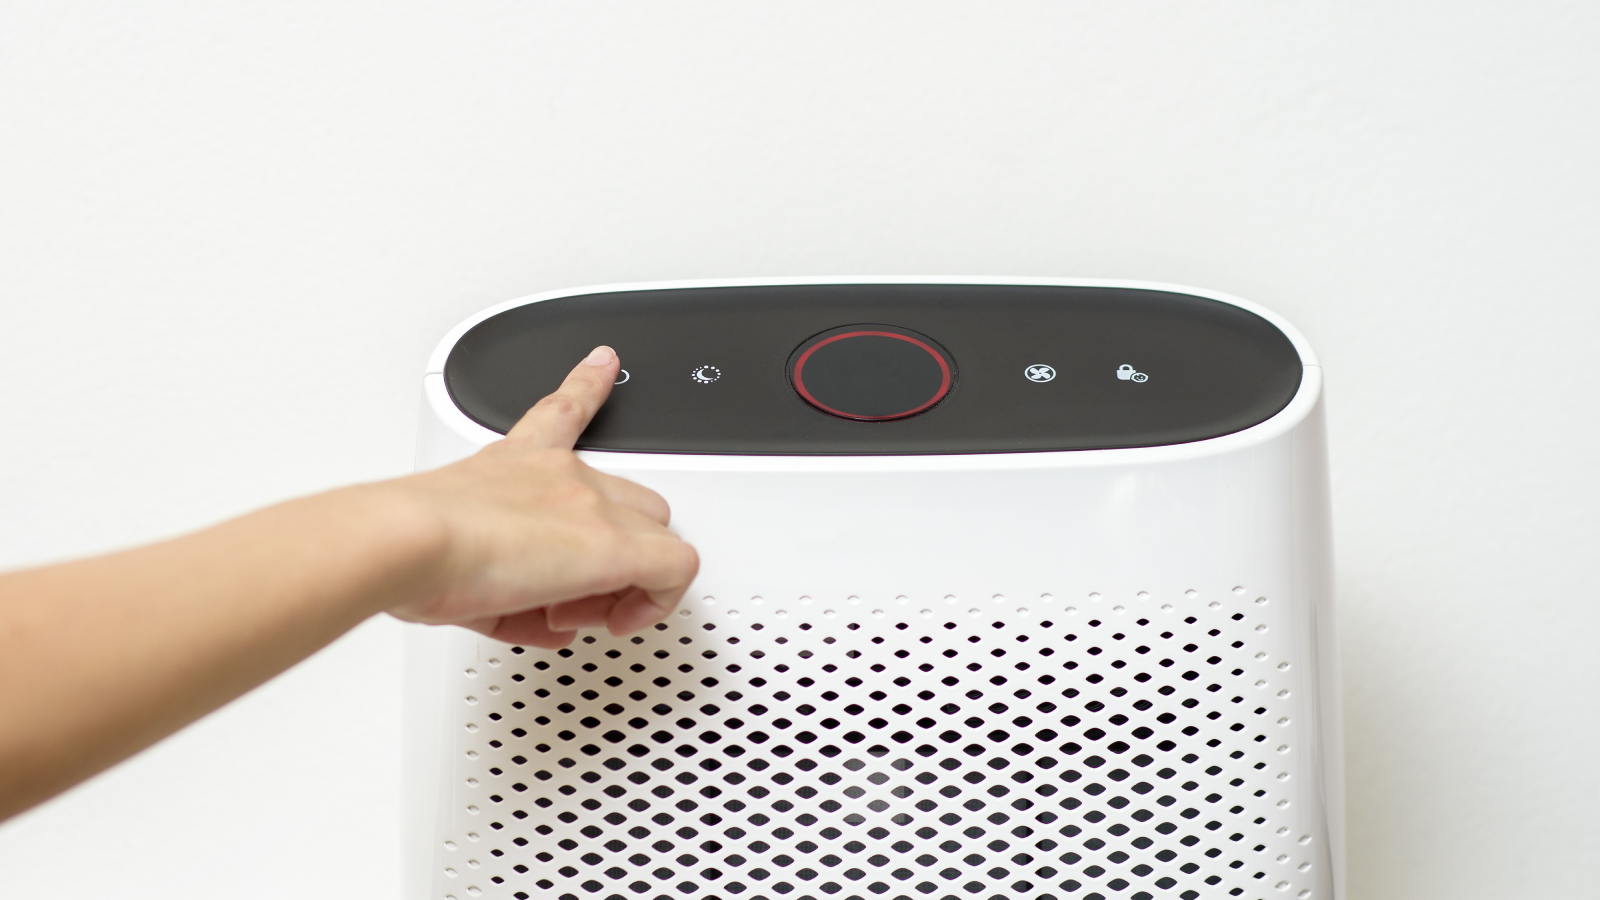 To Keep Away From Best Homelabs Air Purifier Burnout